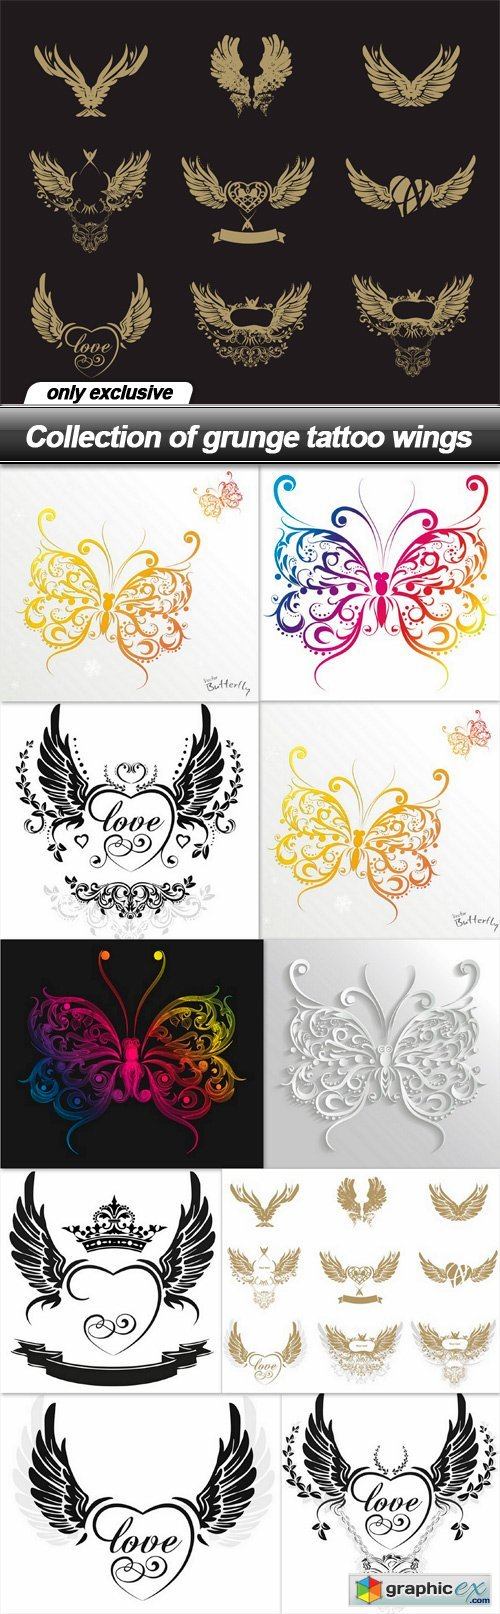 Collection of grunge tattoo wings - 11 EPS